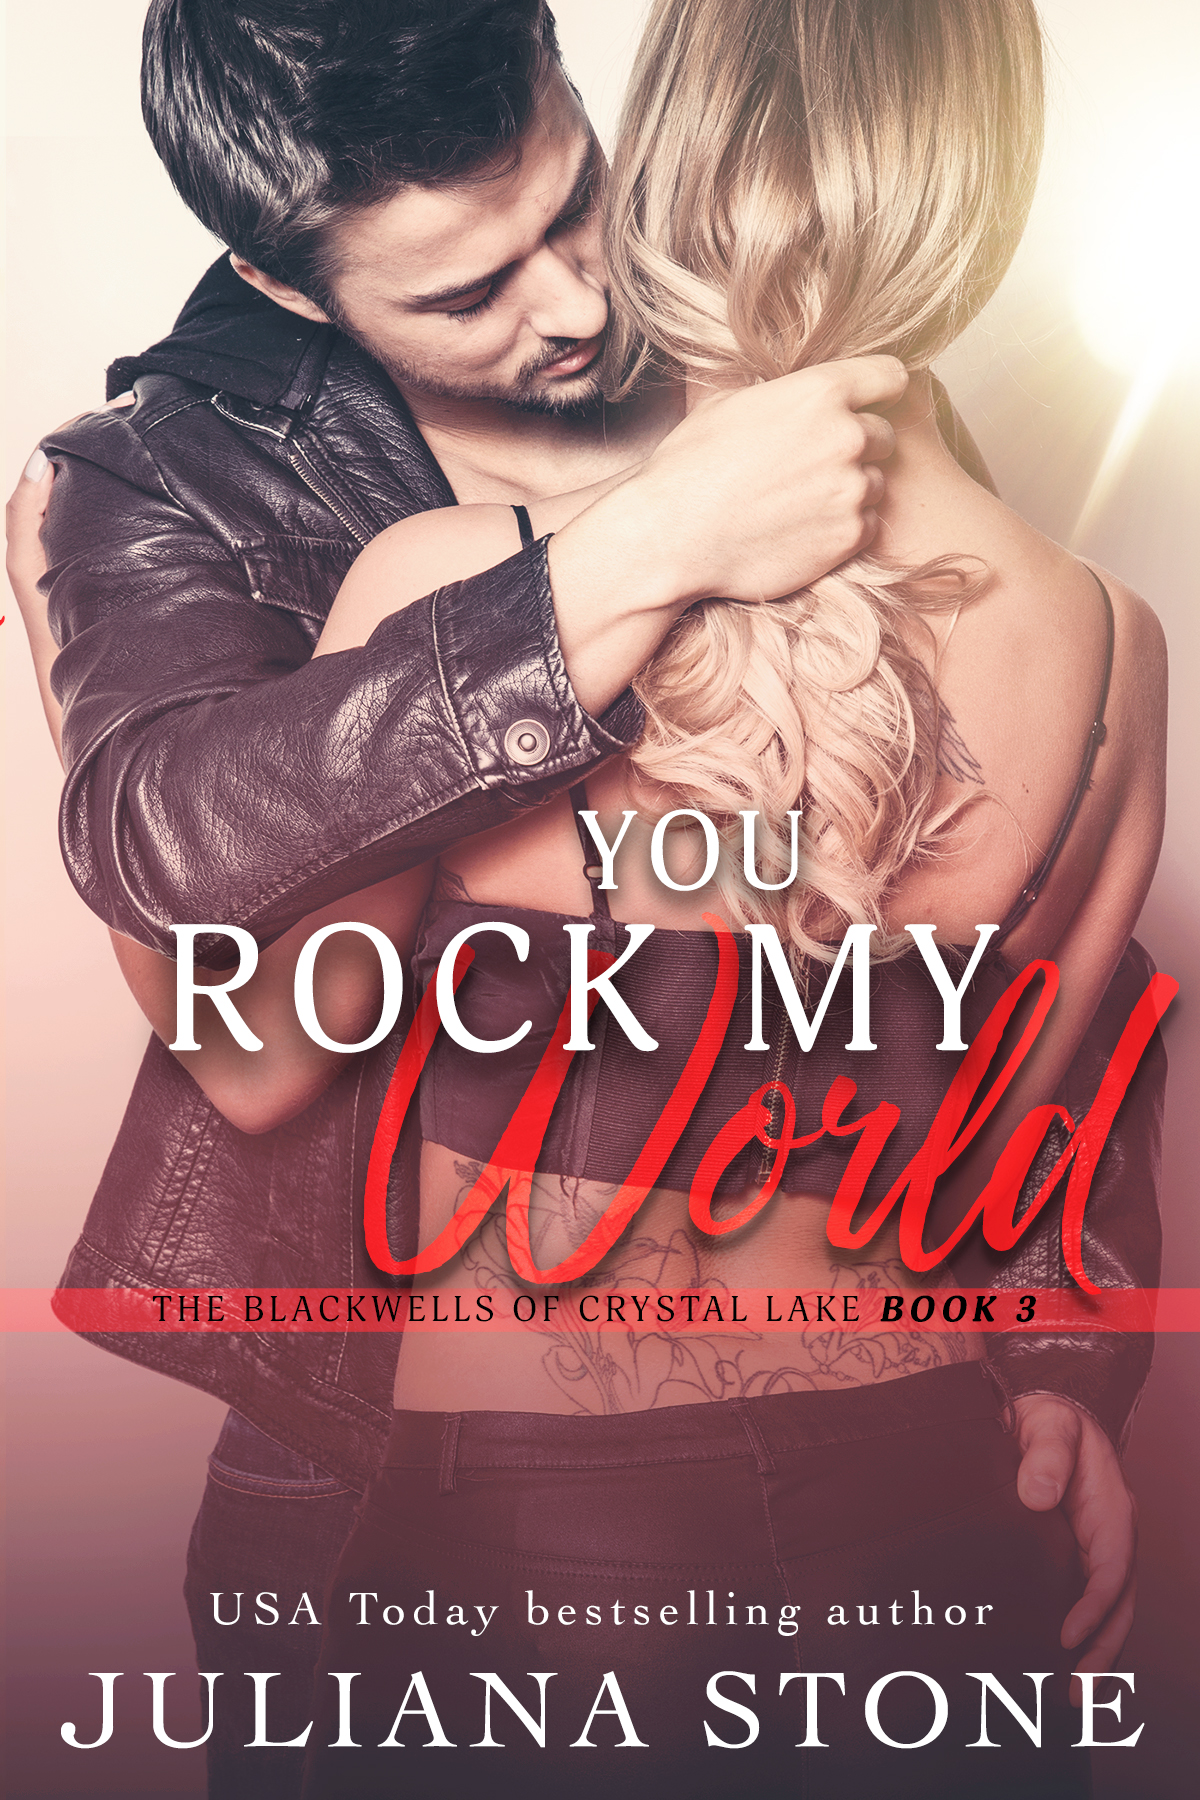 You Rock My World by Juliana Stone